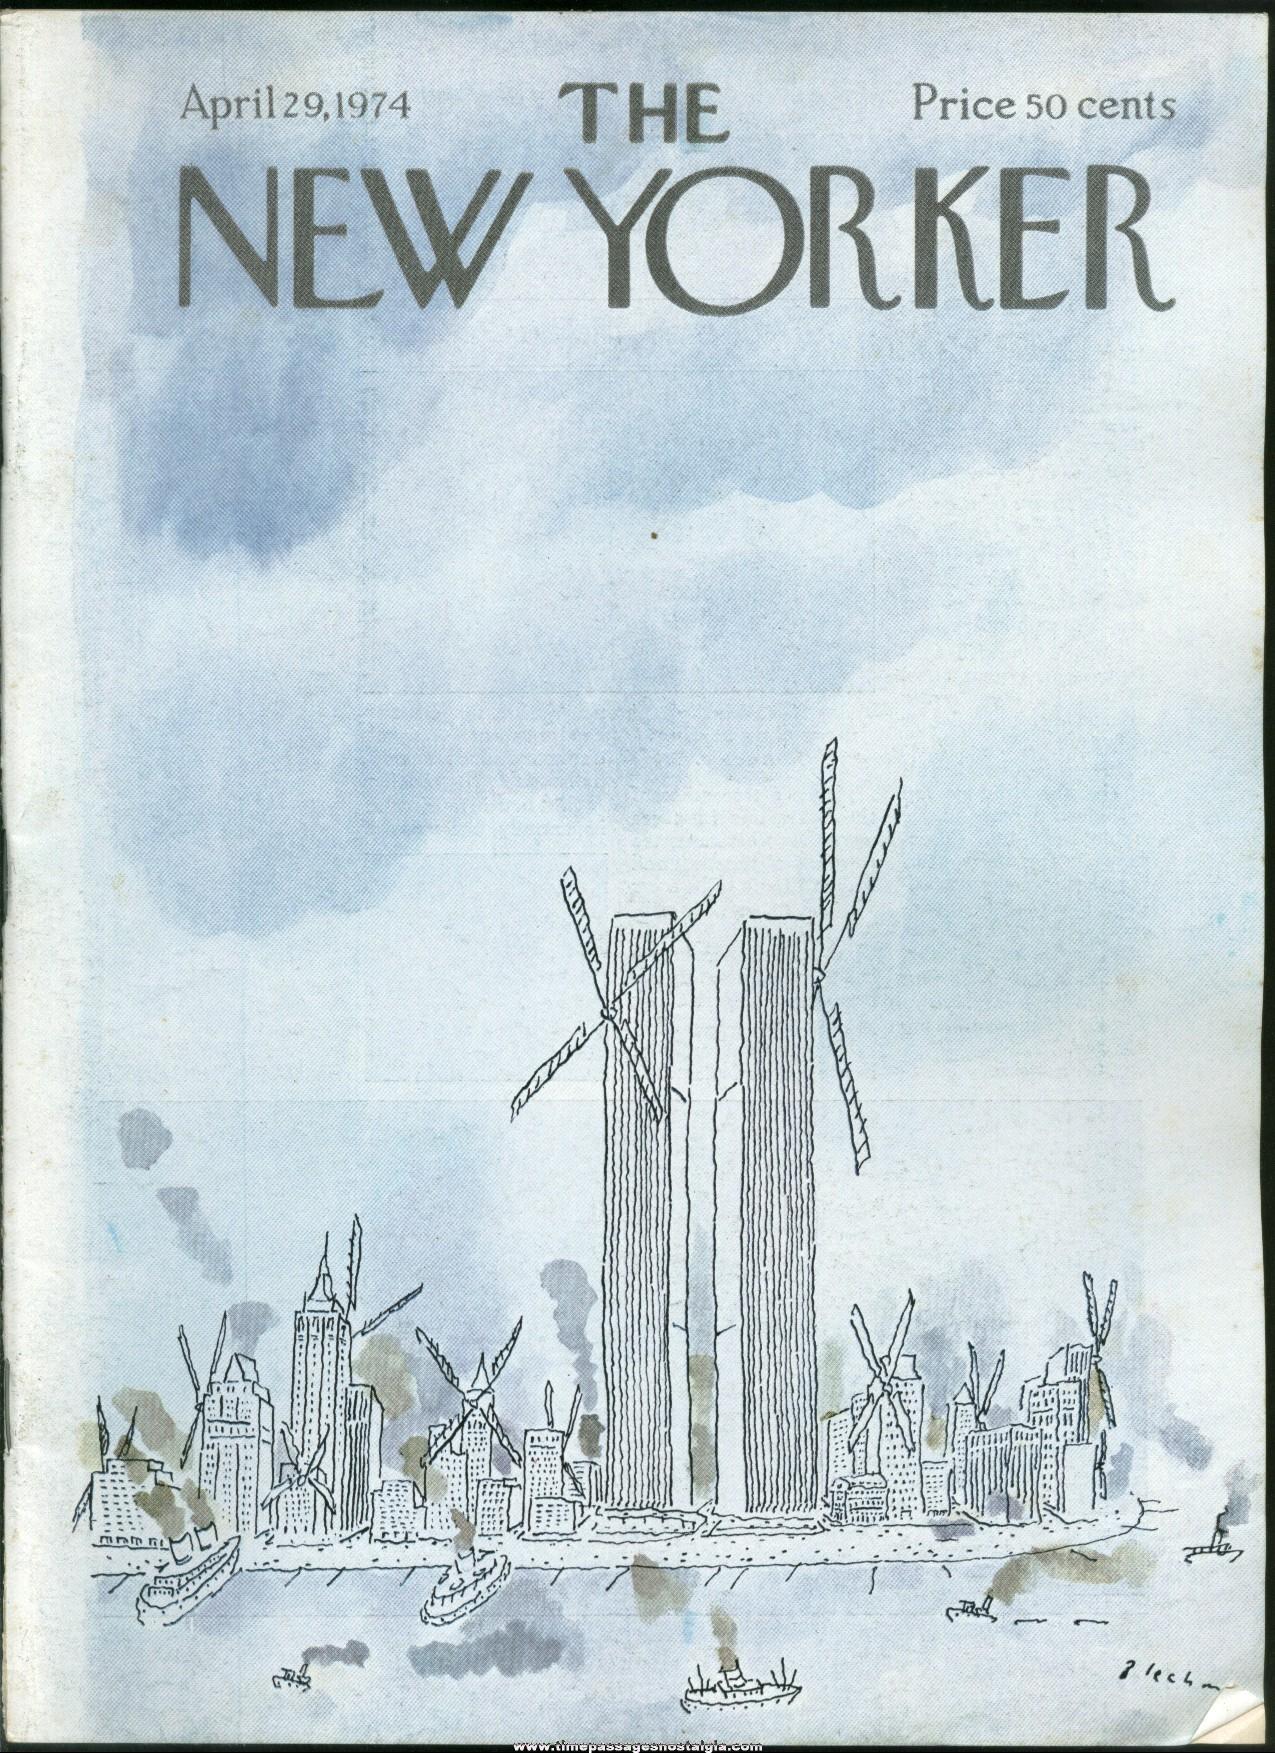 New Yorker Magazine - April 29, 1974 - Cover by R. O. Blechman